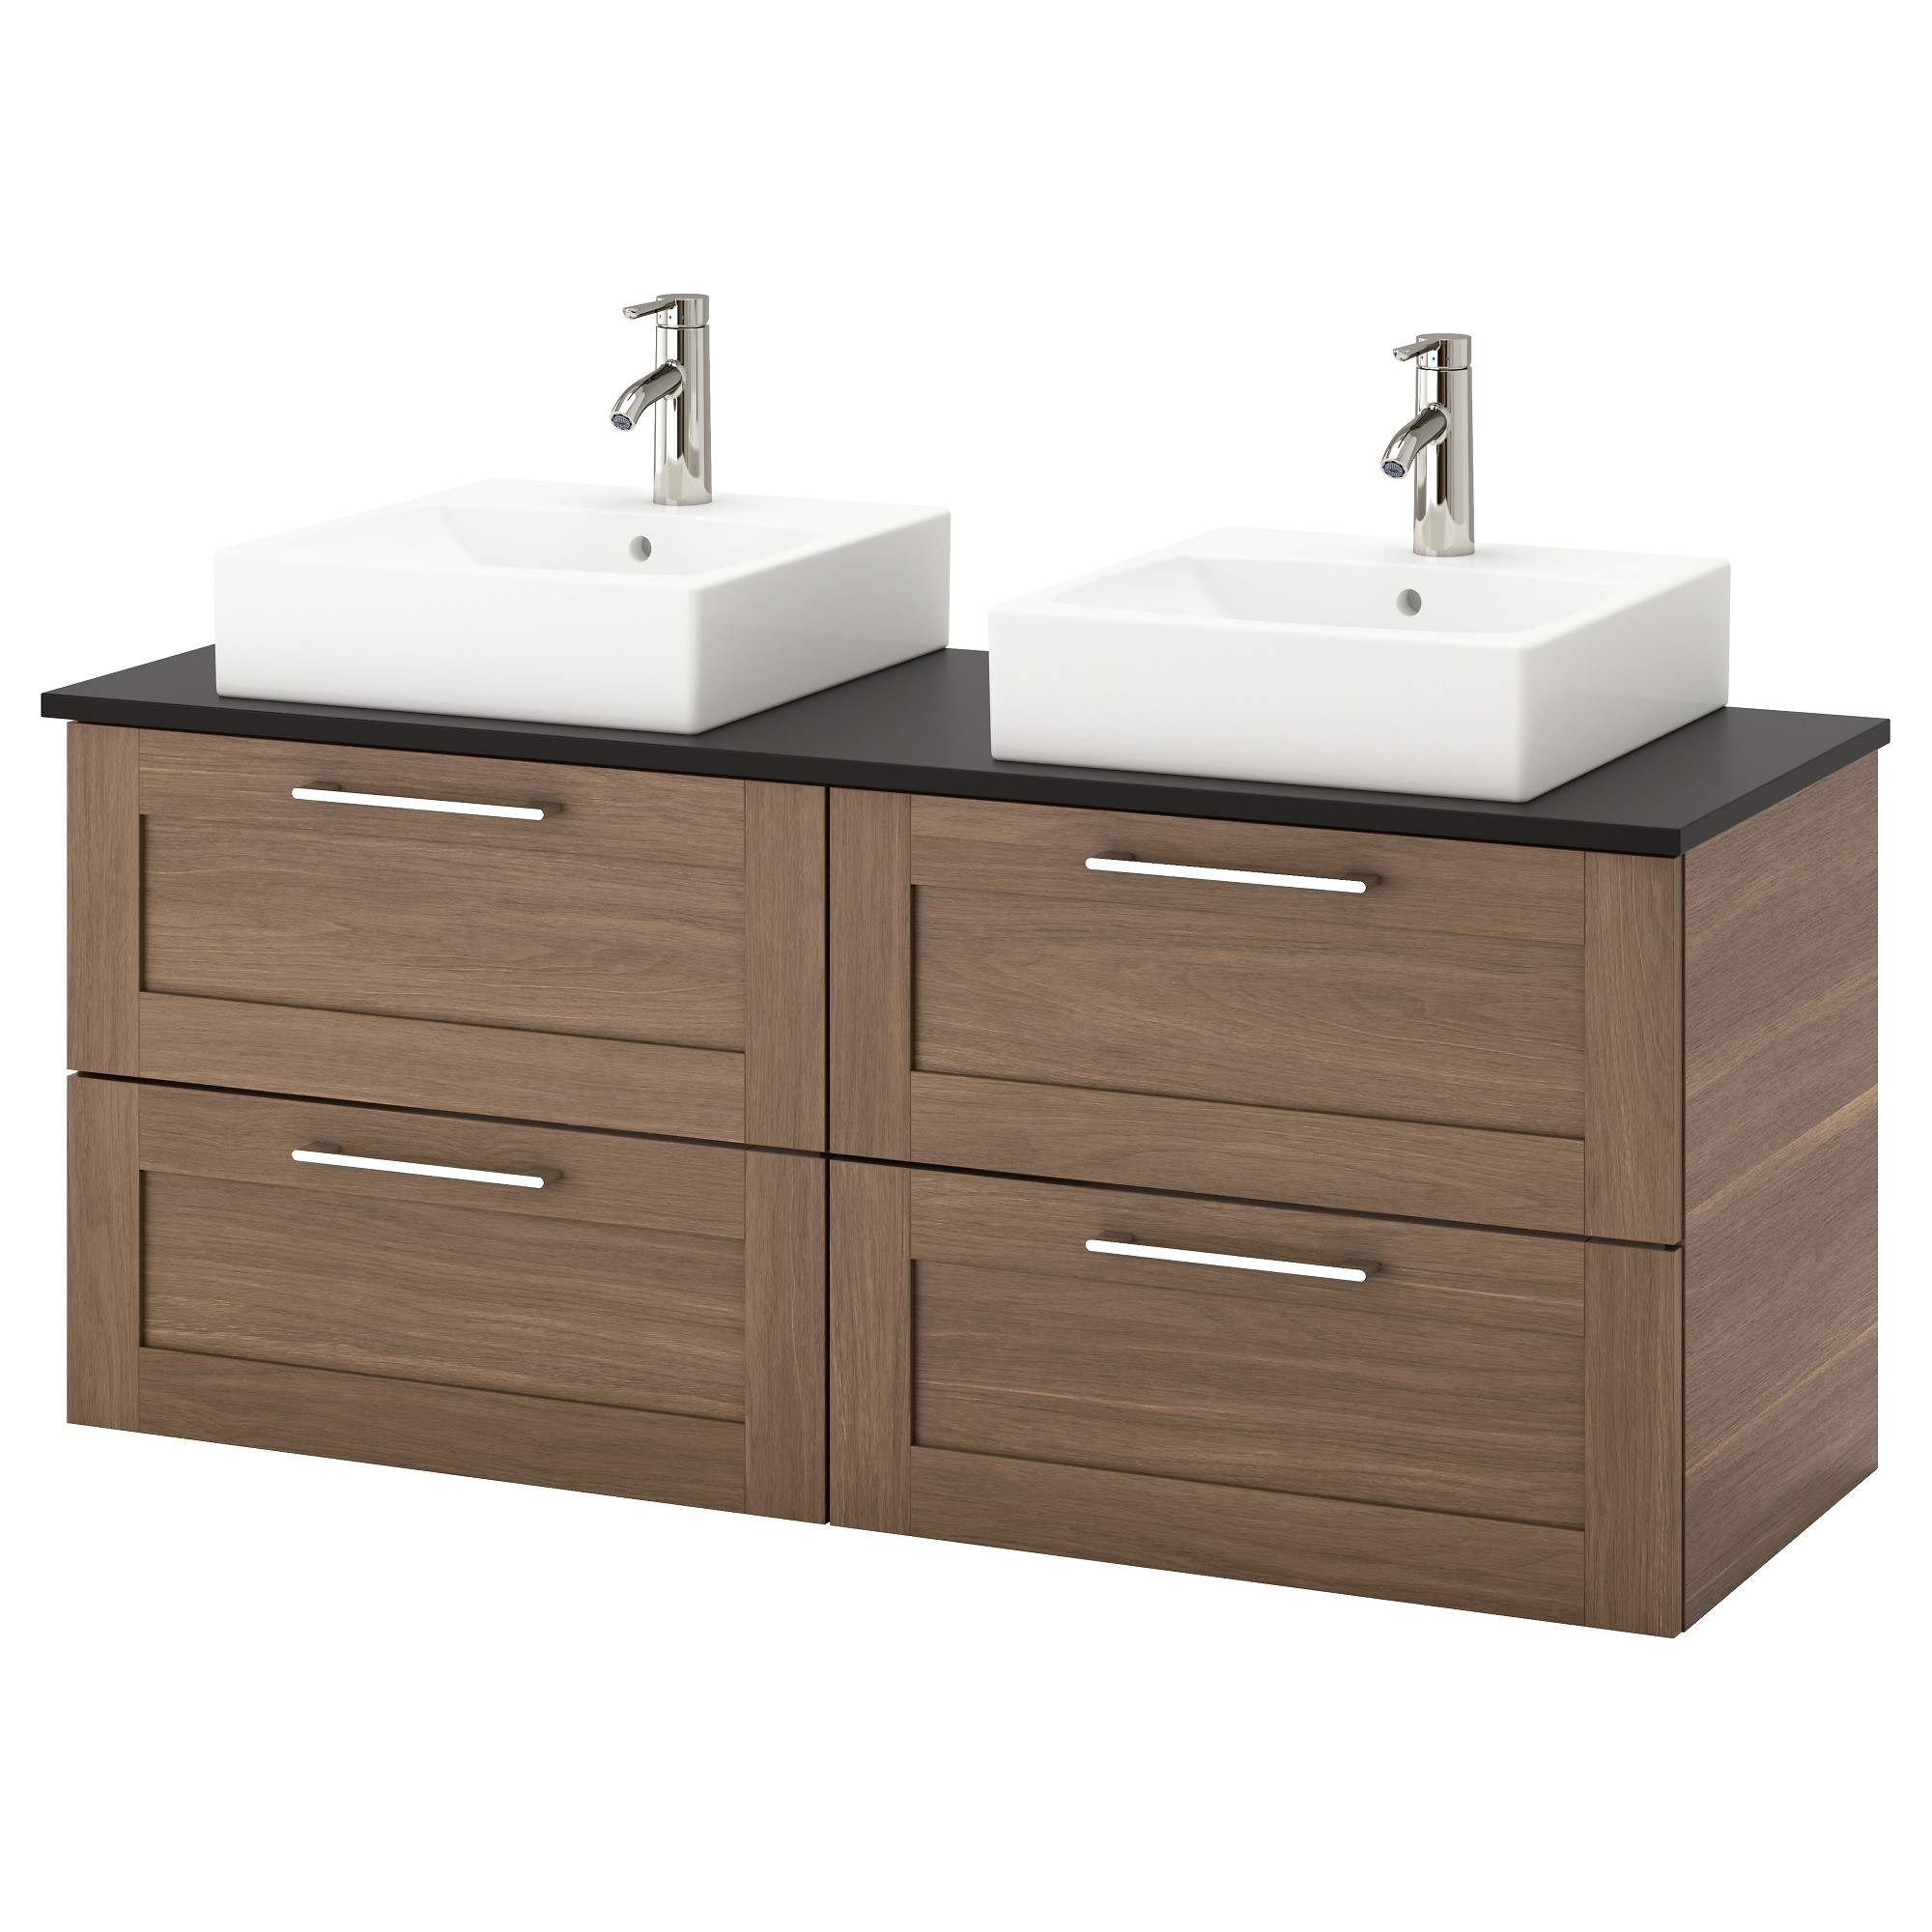 godmorgon tolken trnviken vanity countertop and 17 34 sink - Bathroom Cabinets Sink